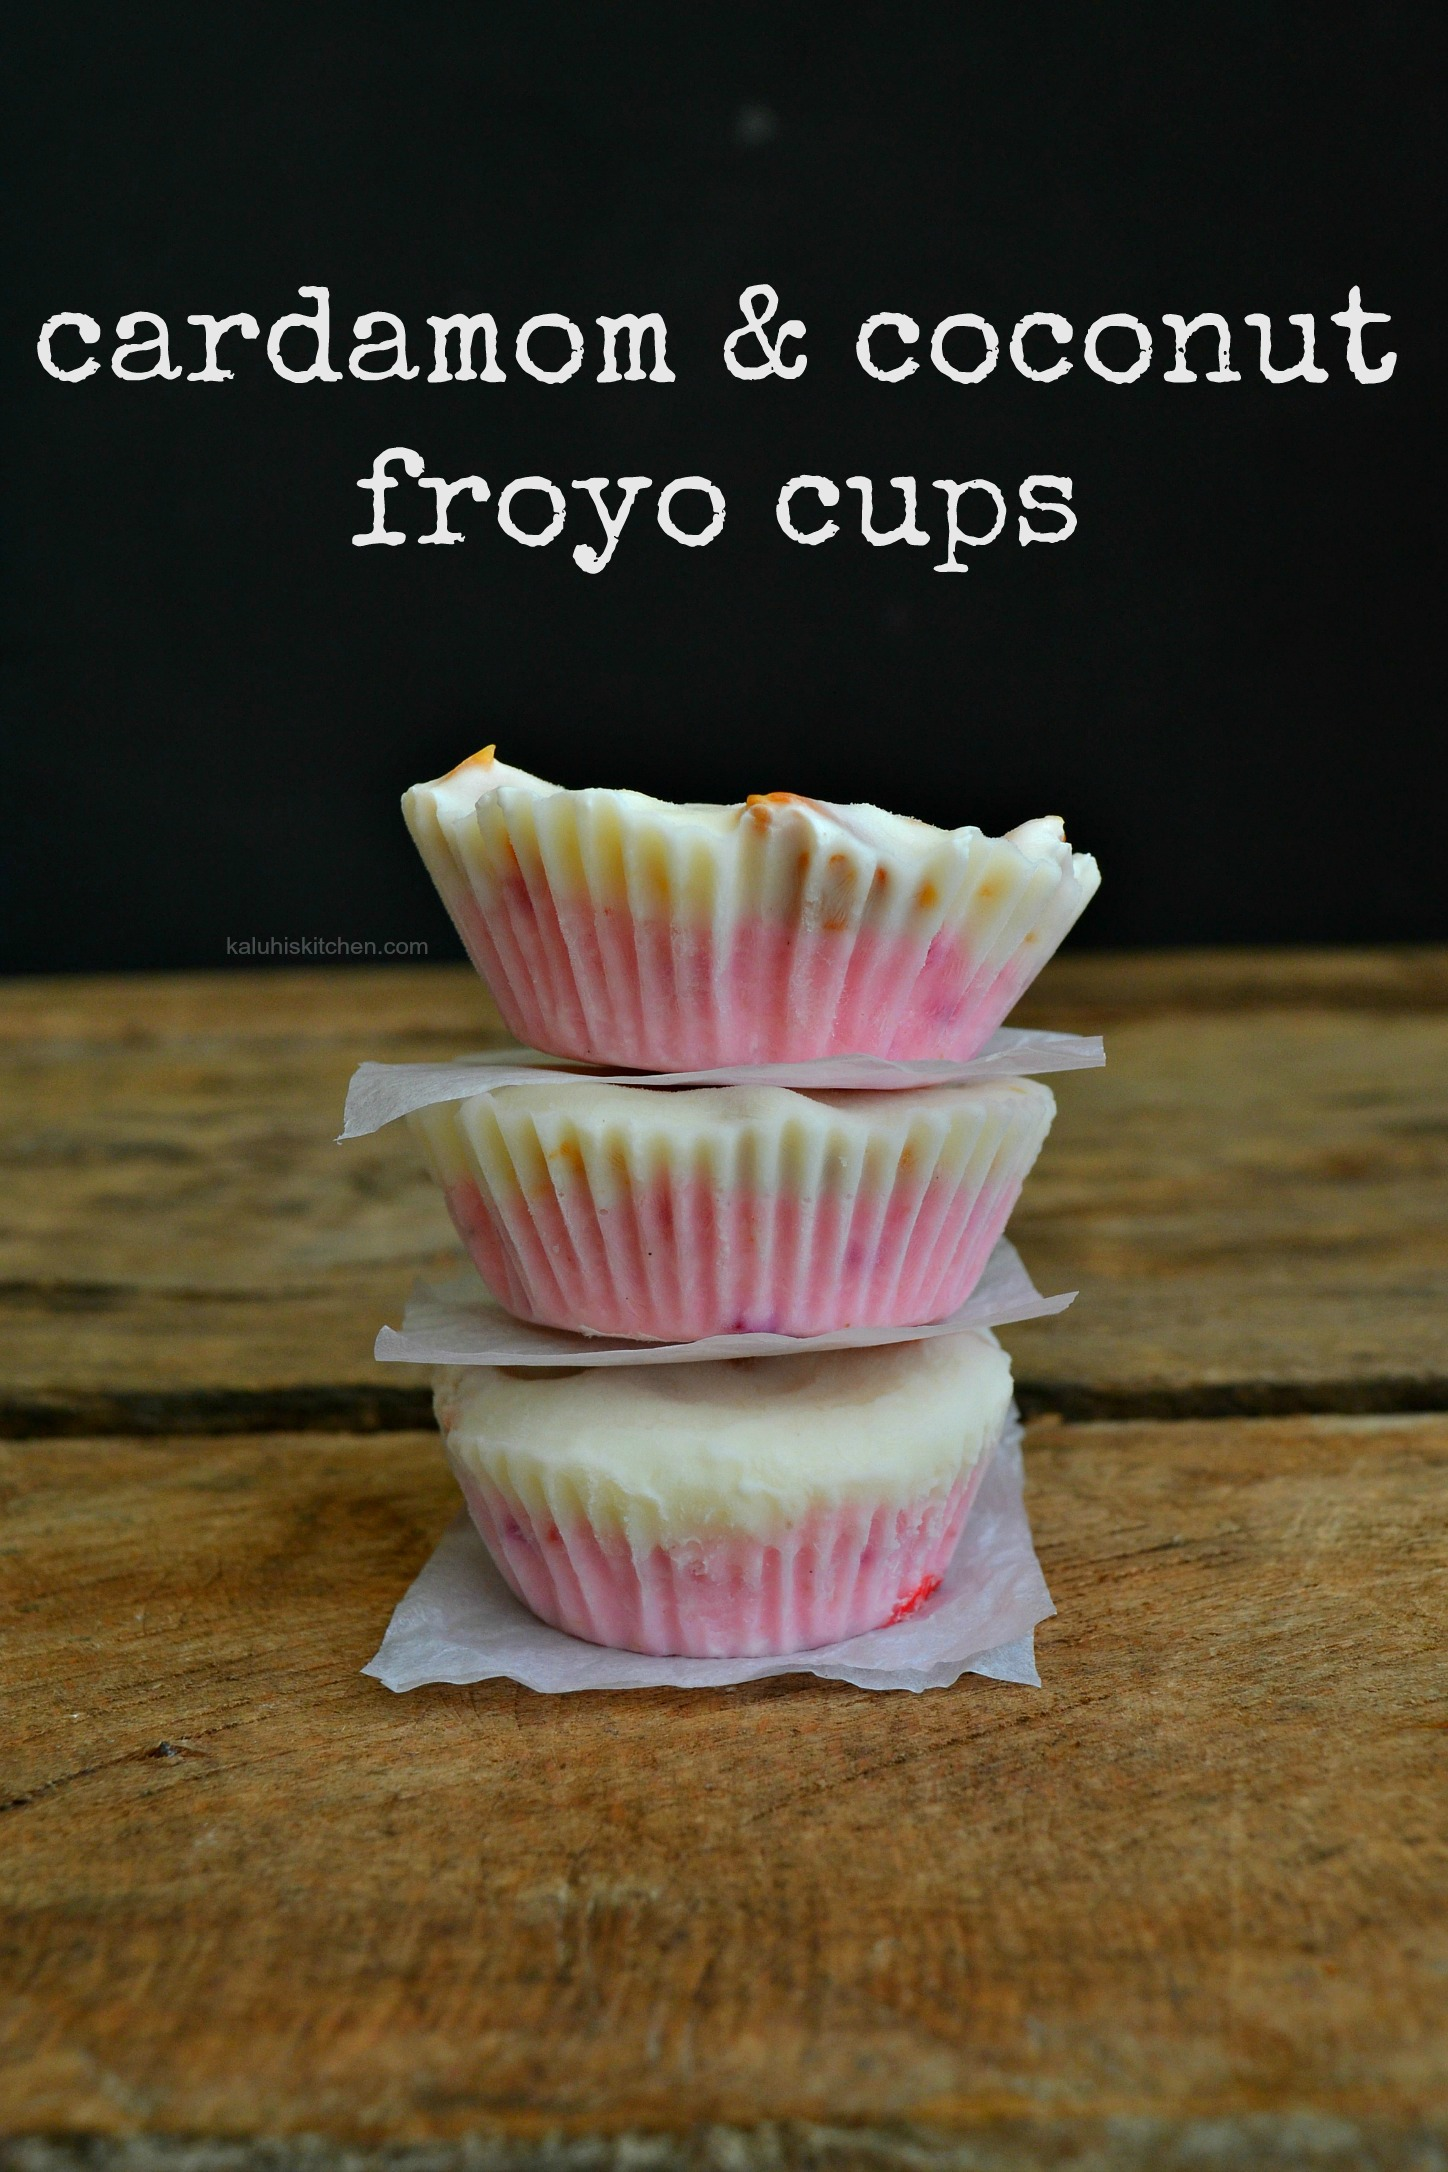 African food bloggers_Kenyan food bloggers_how to make froyo at home_kaluhiskitchen